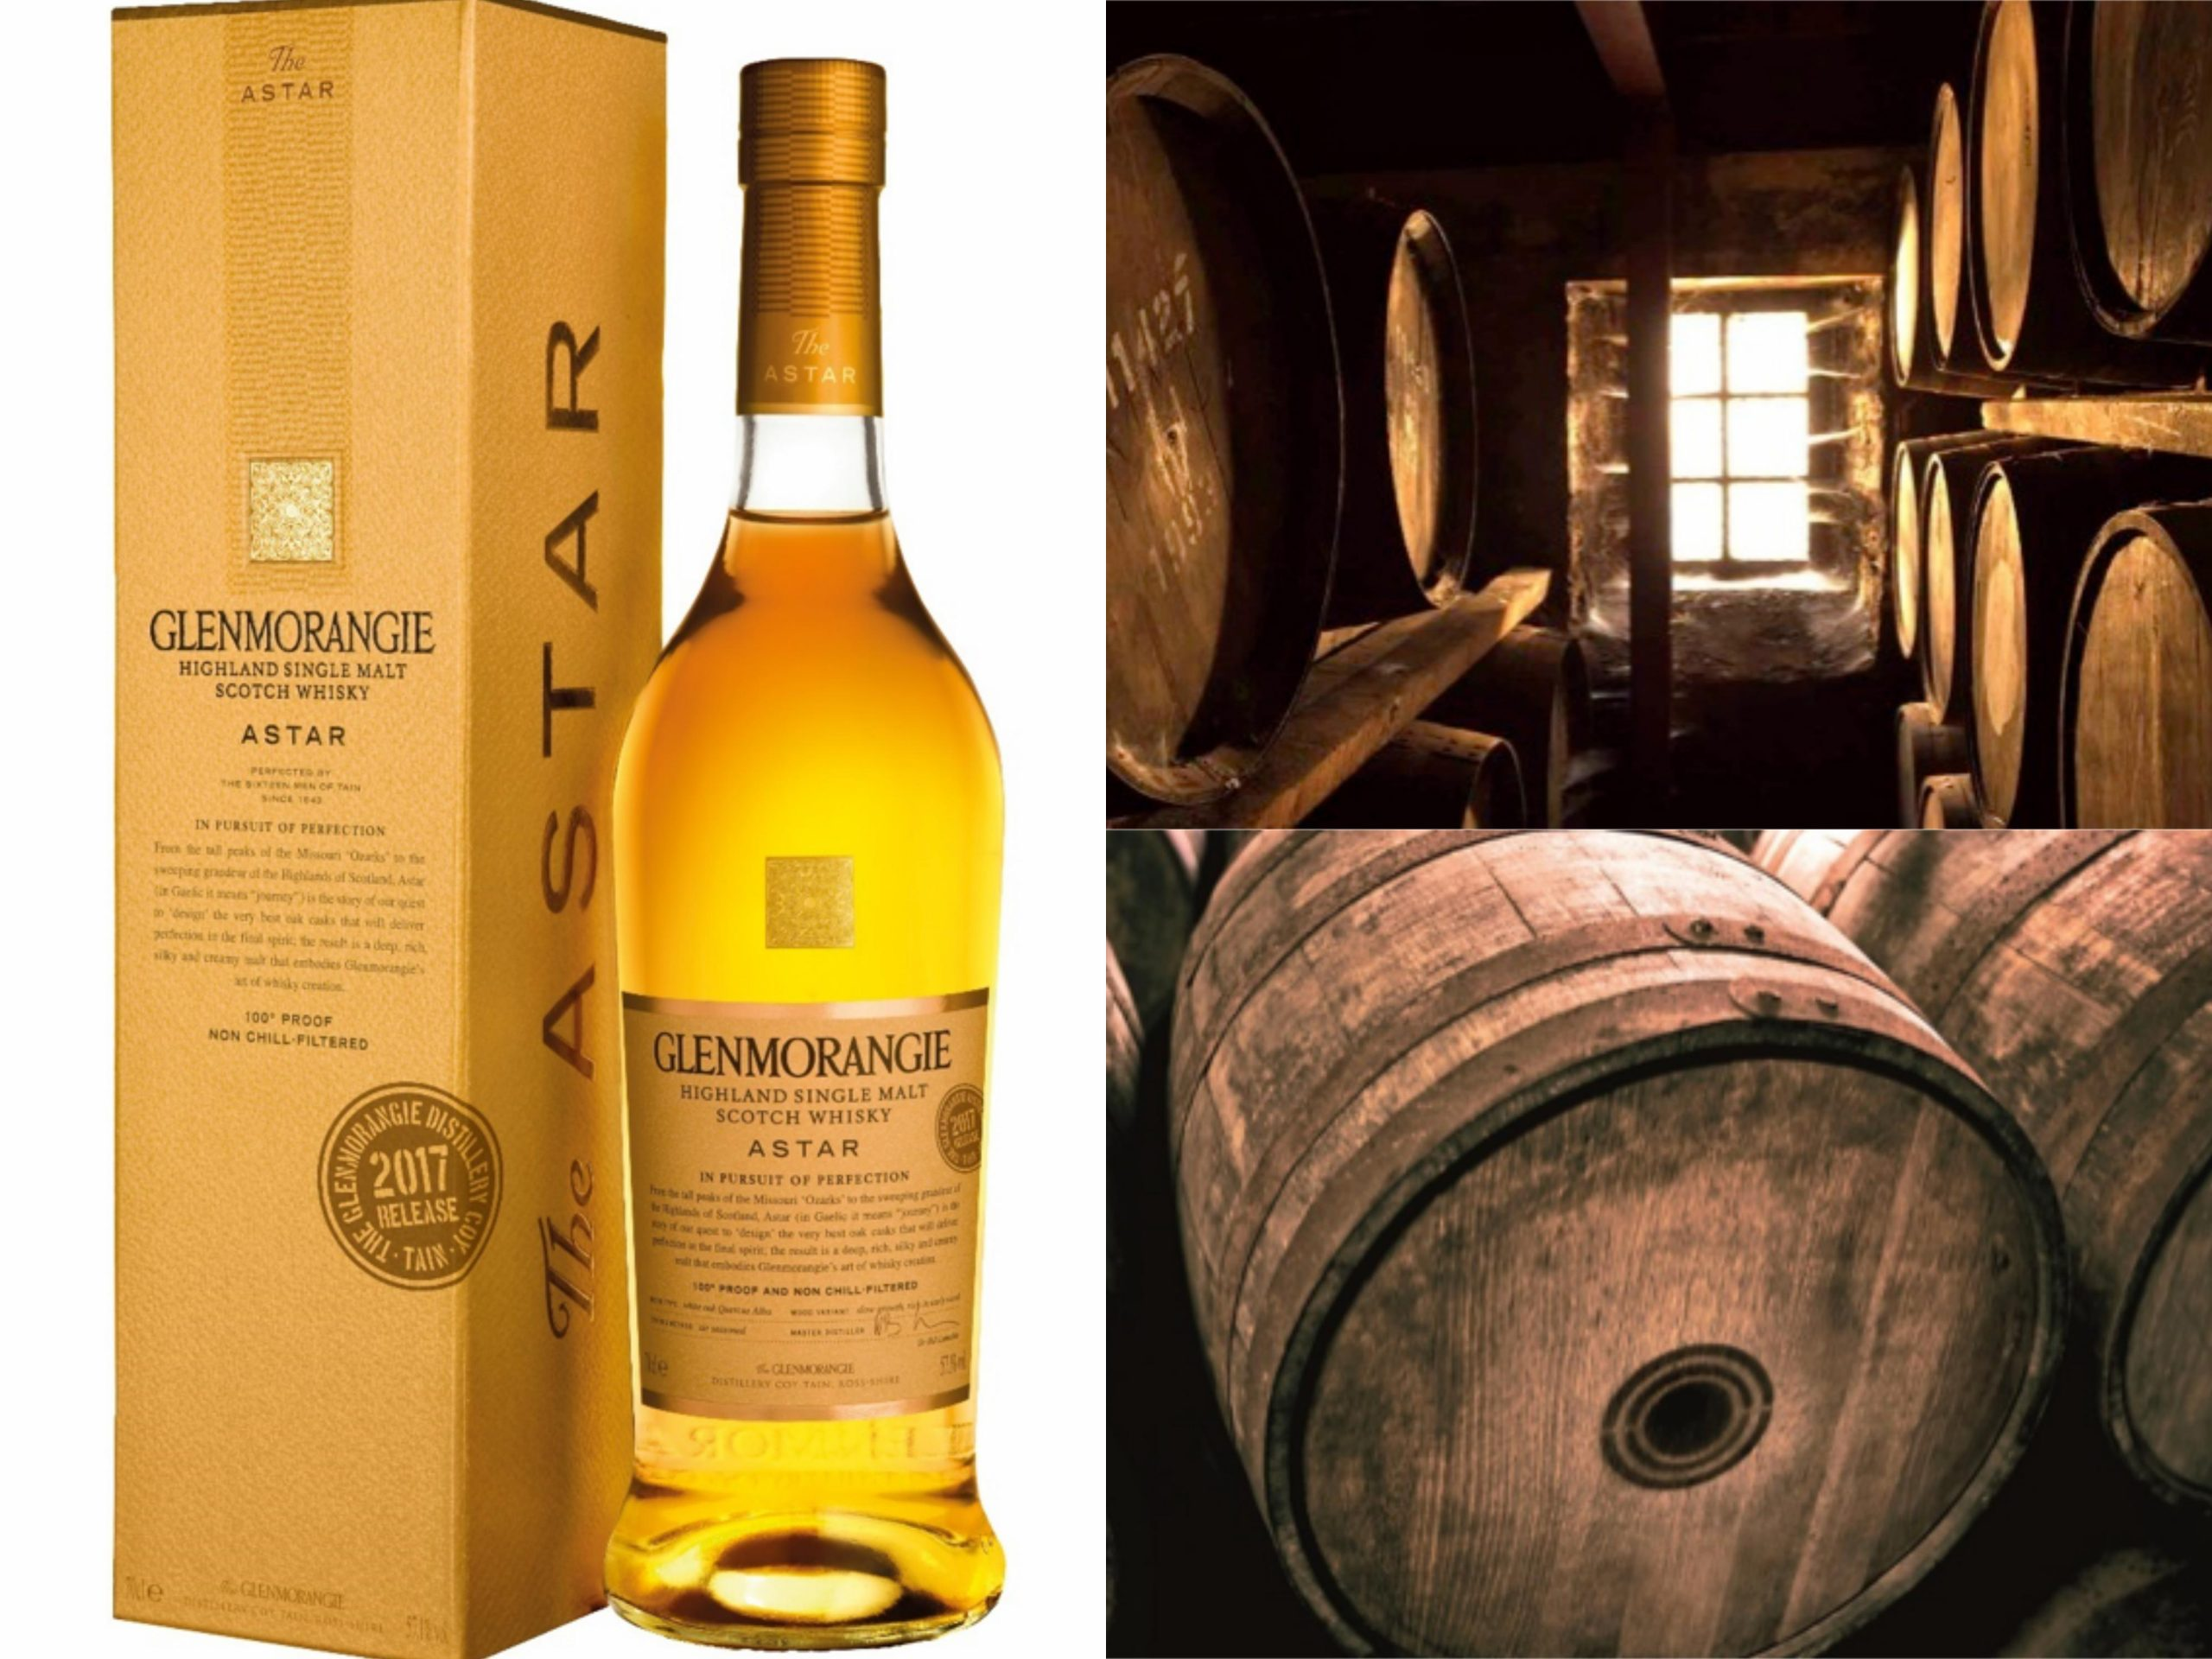 Glenmorangie Astar returns as a 2017 limited edition release…